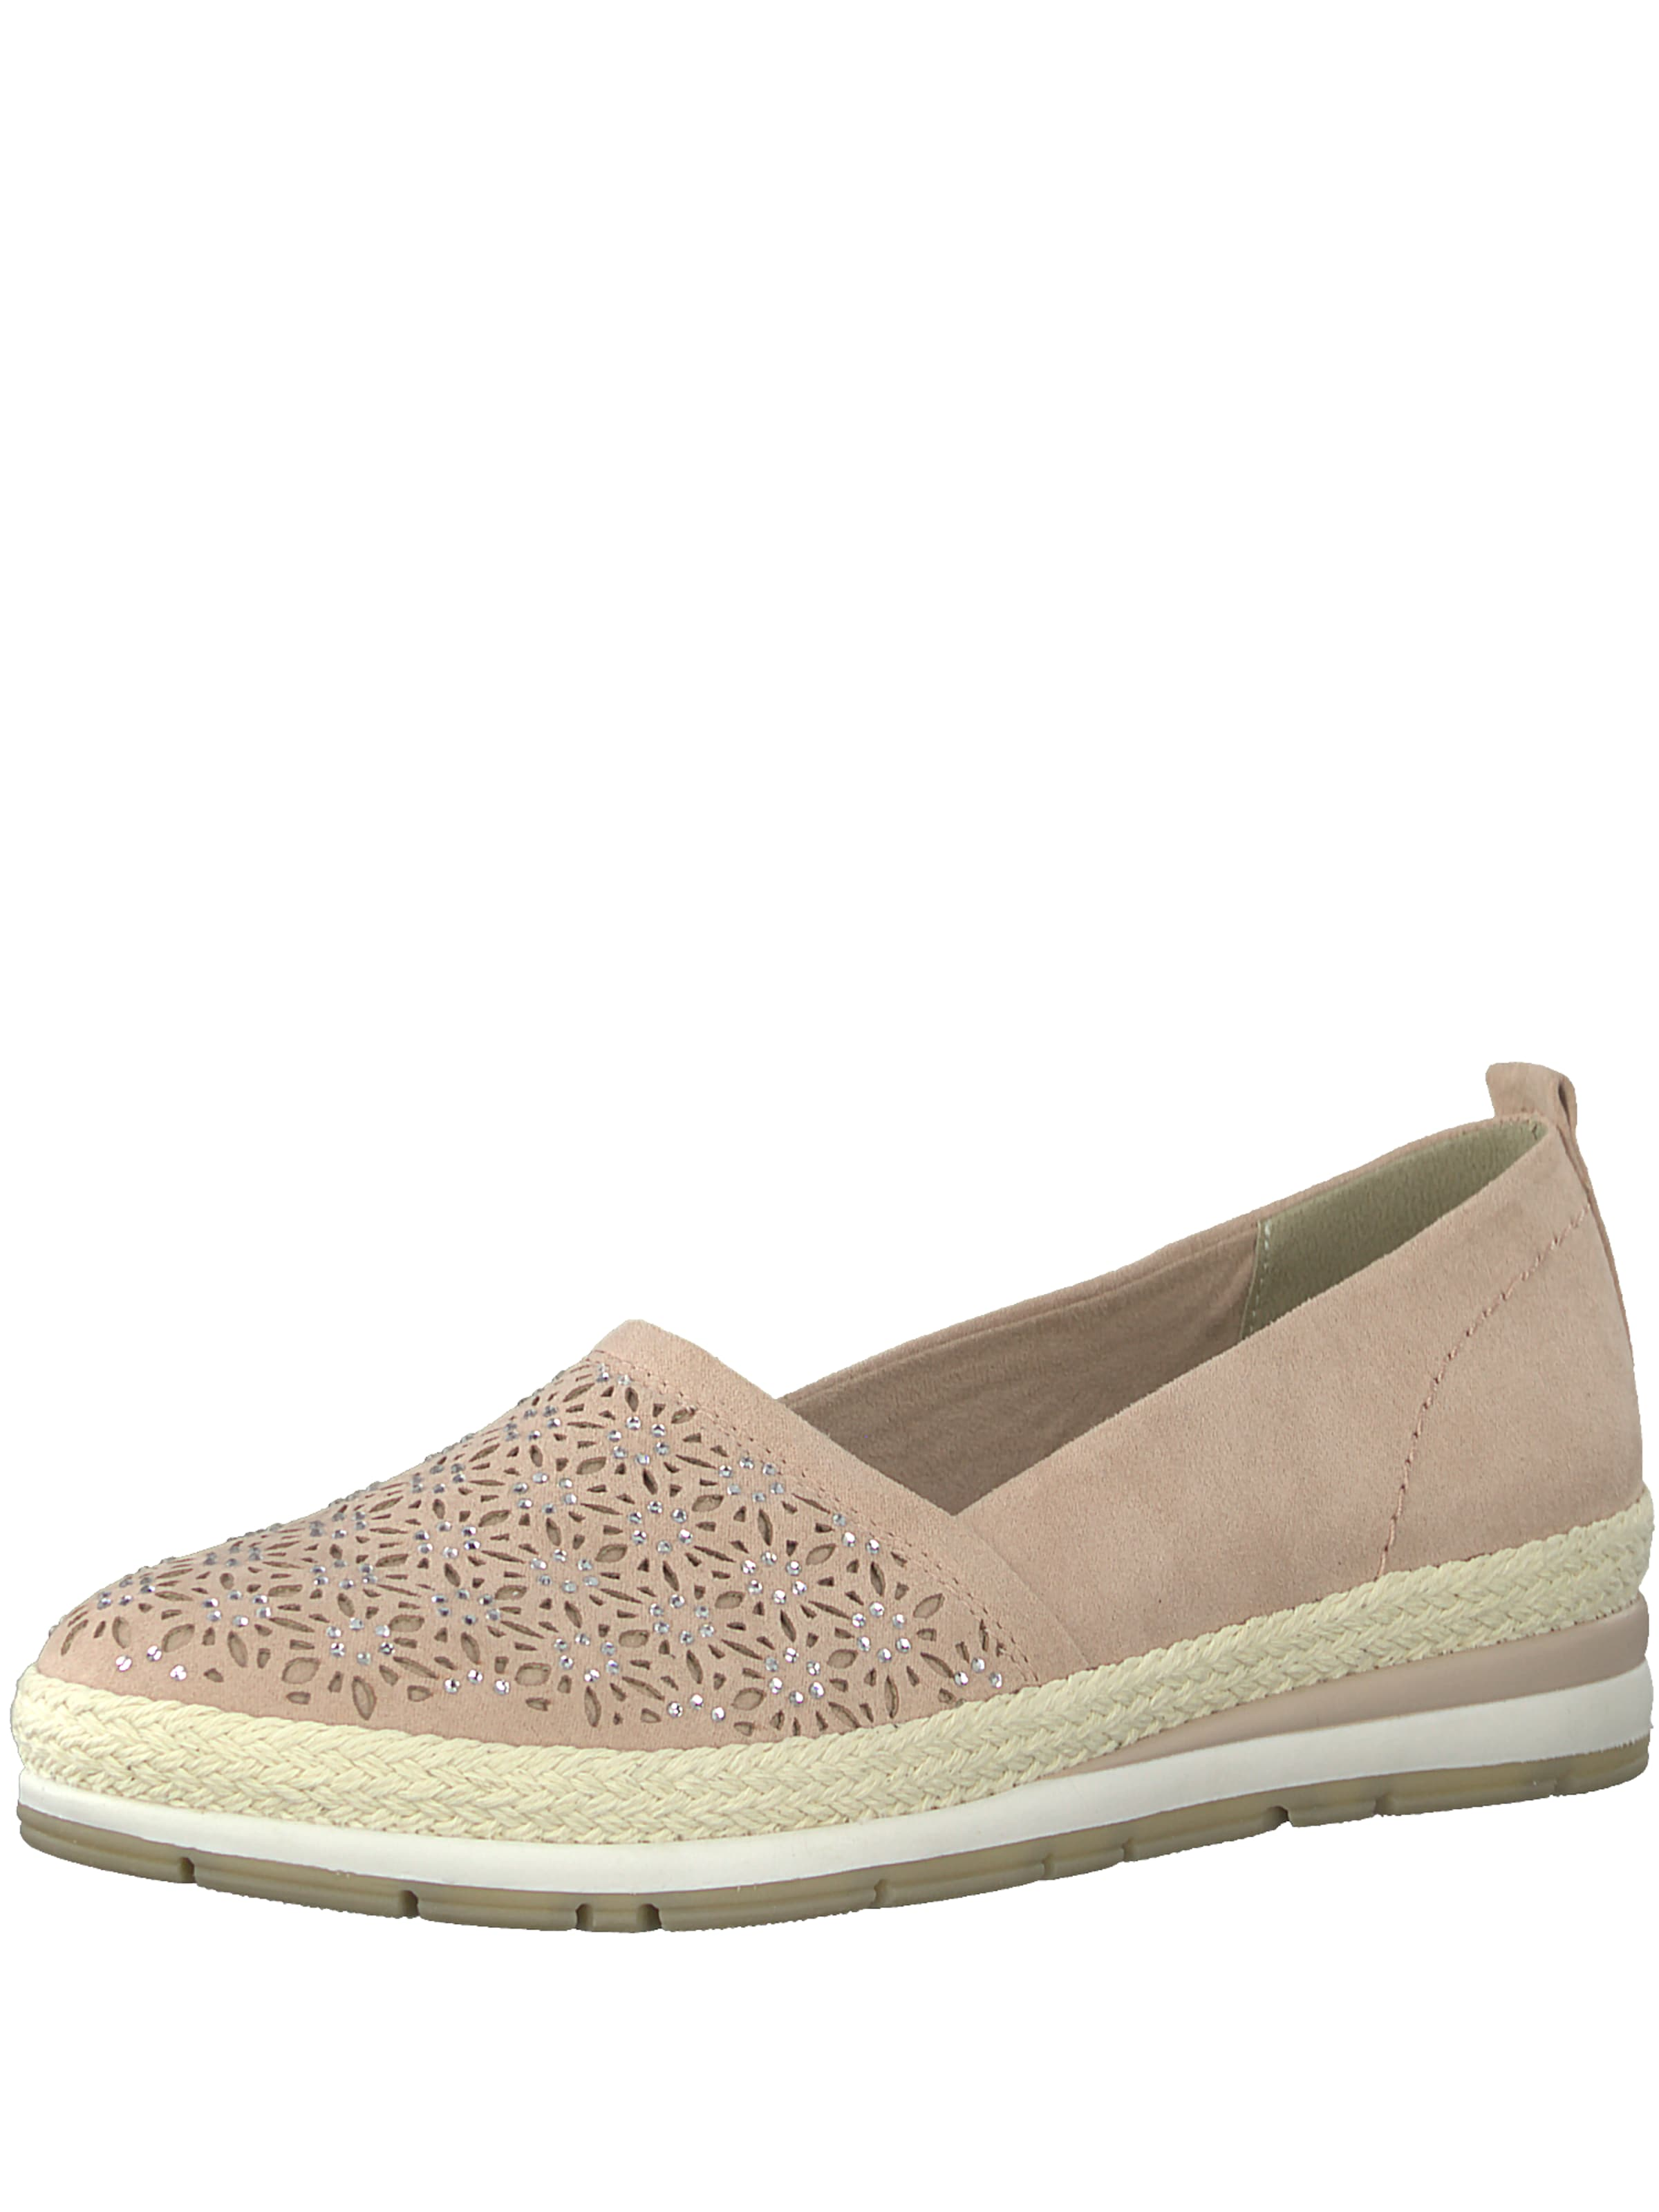 En Chaussons Rose Marco En Tozzi Tozzi Chaussons Marco Tozzi Marco Rose 0P8nXZNkOw